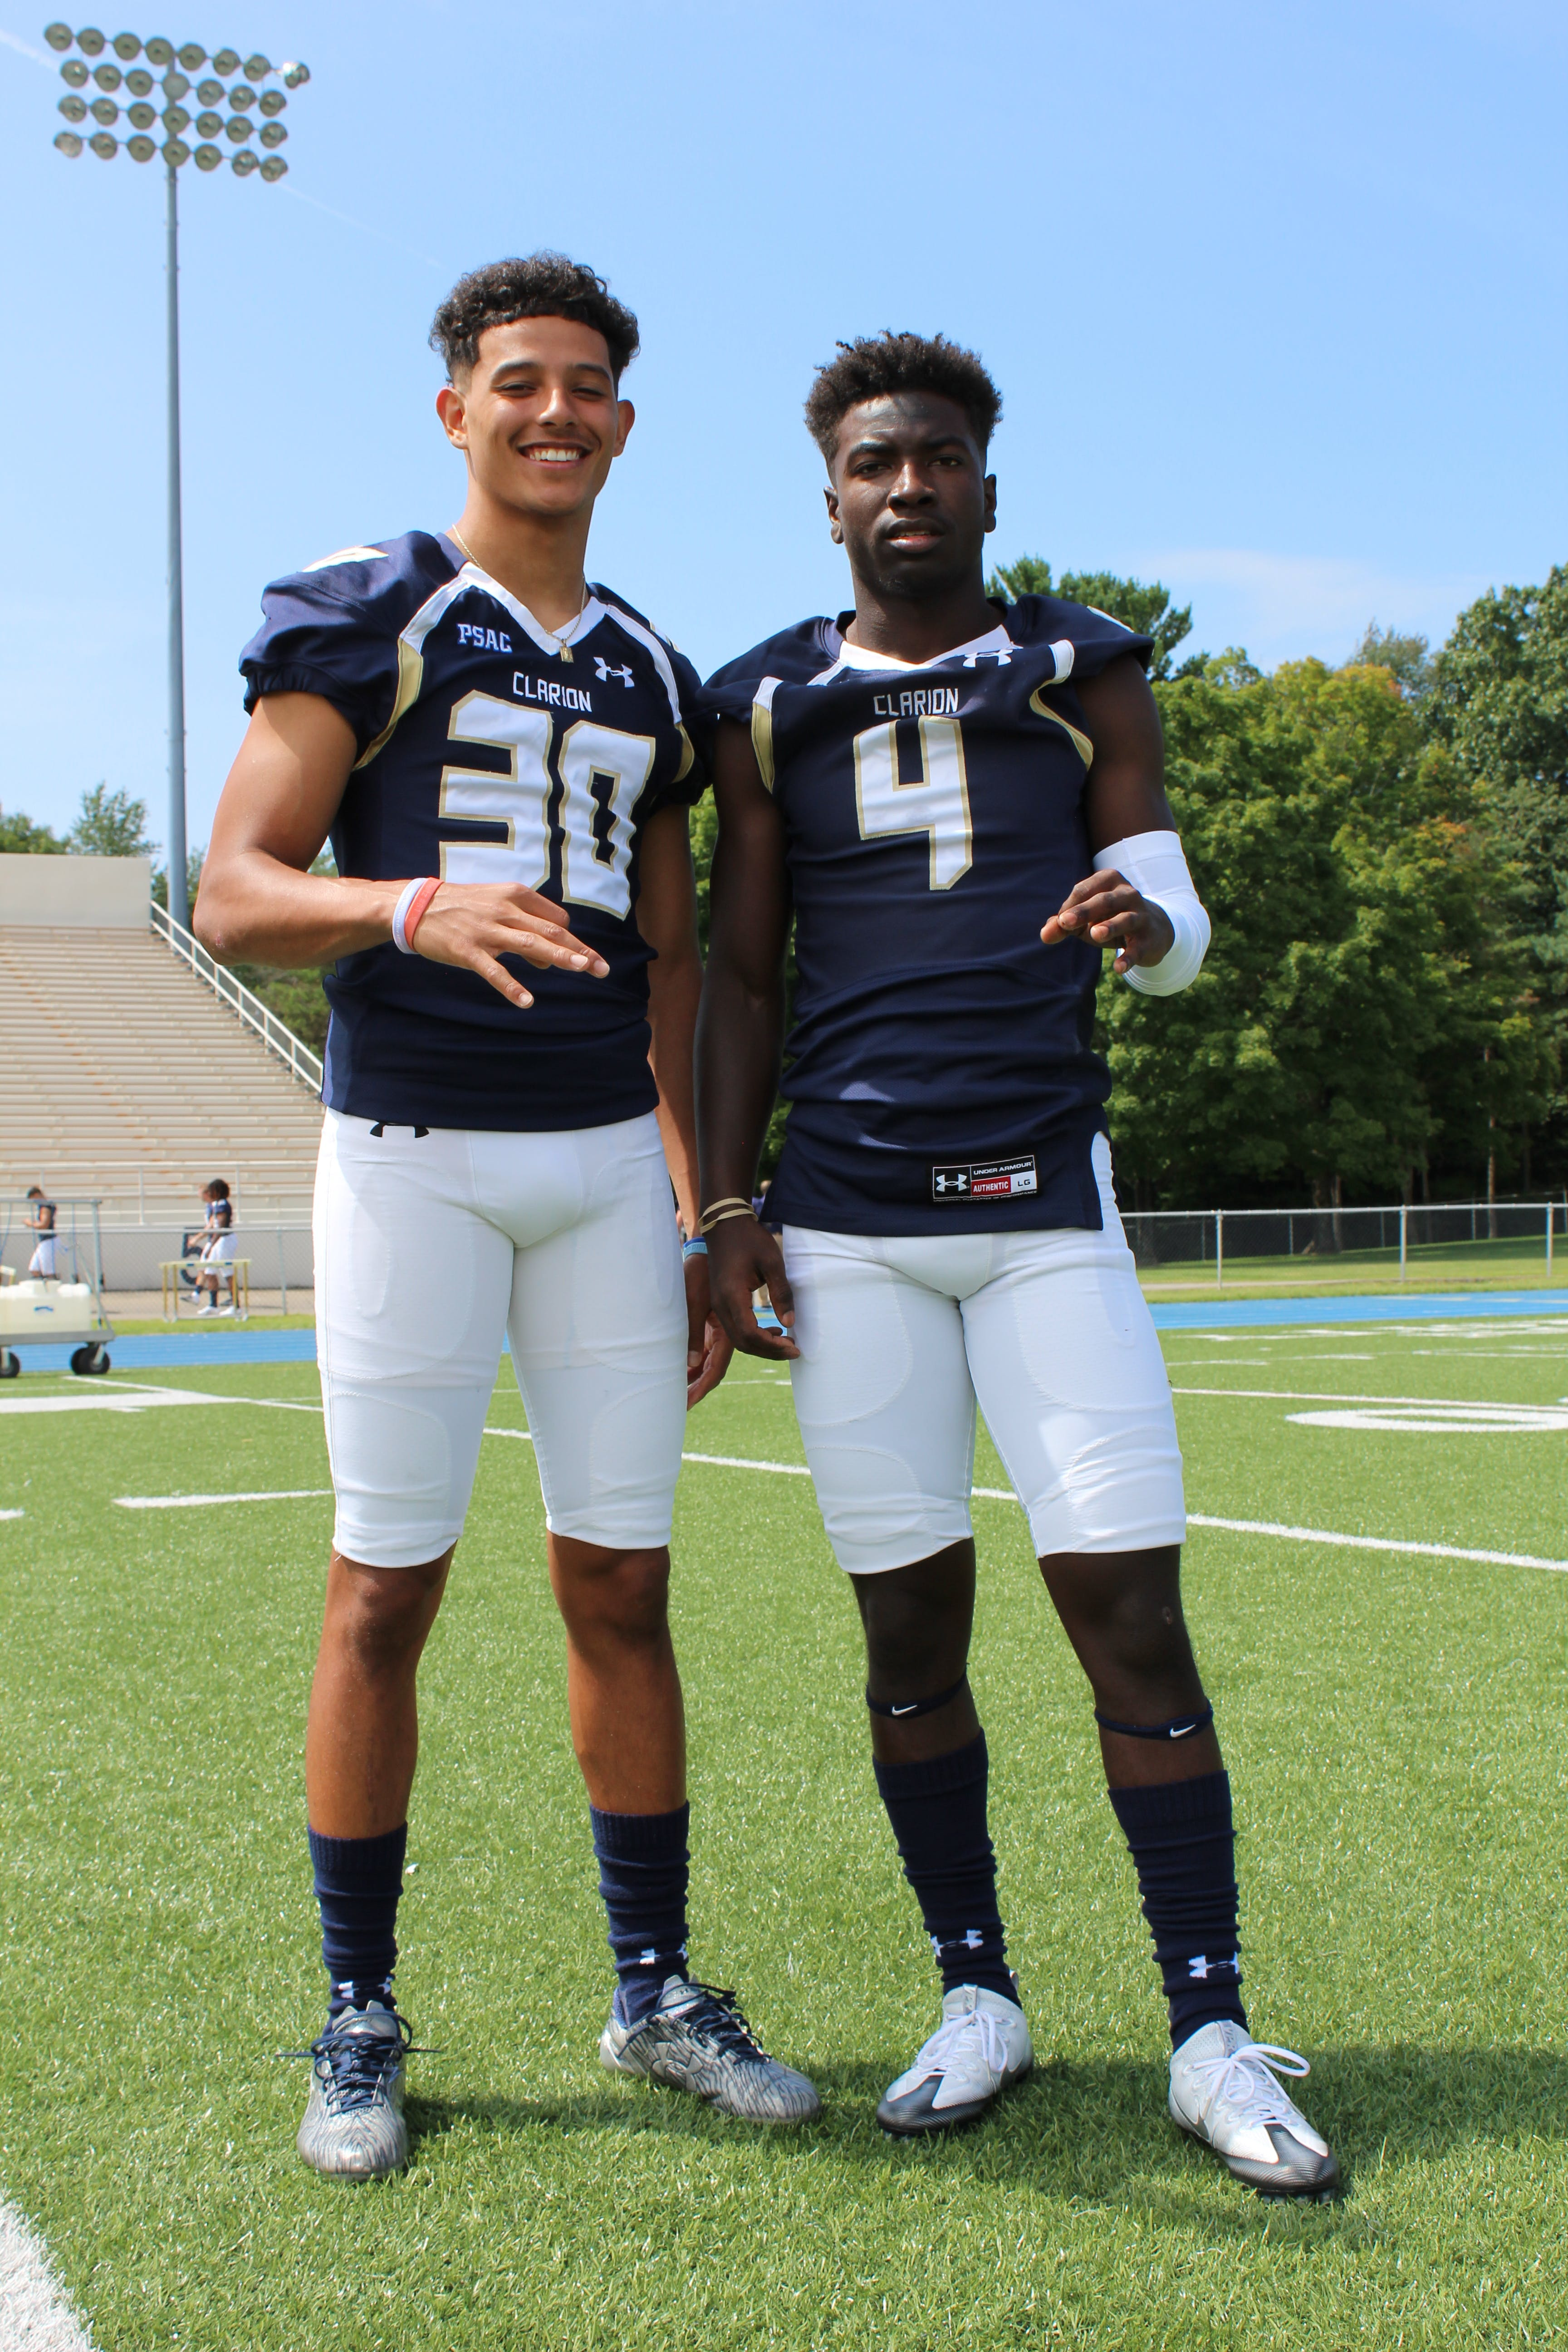 Two Football Players Taking Picture on Football Field